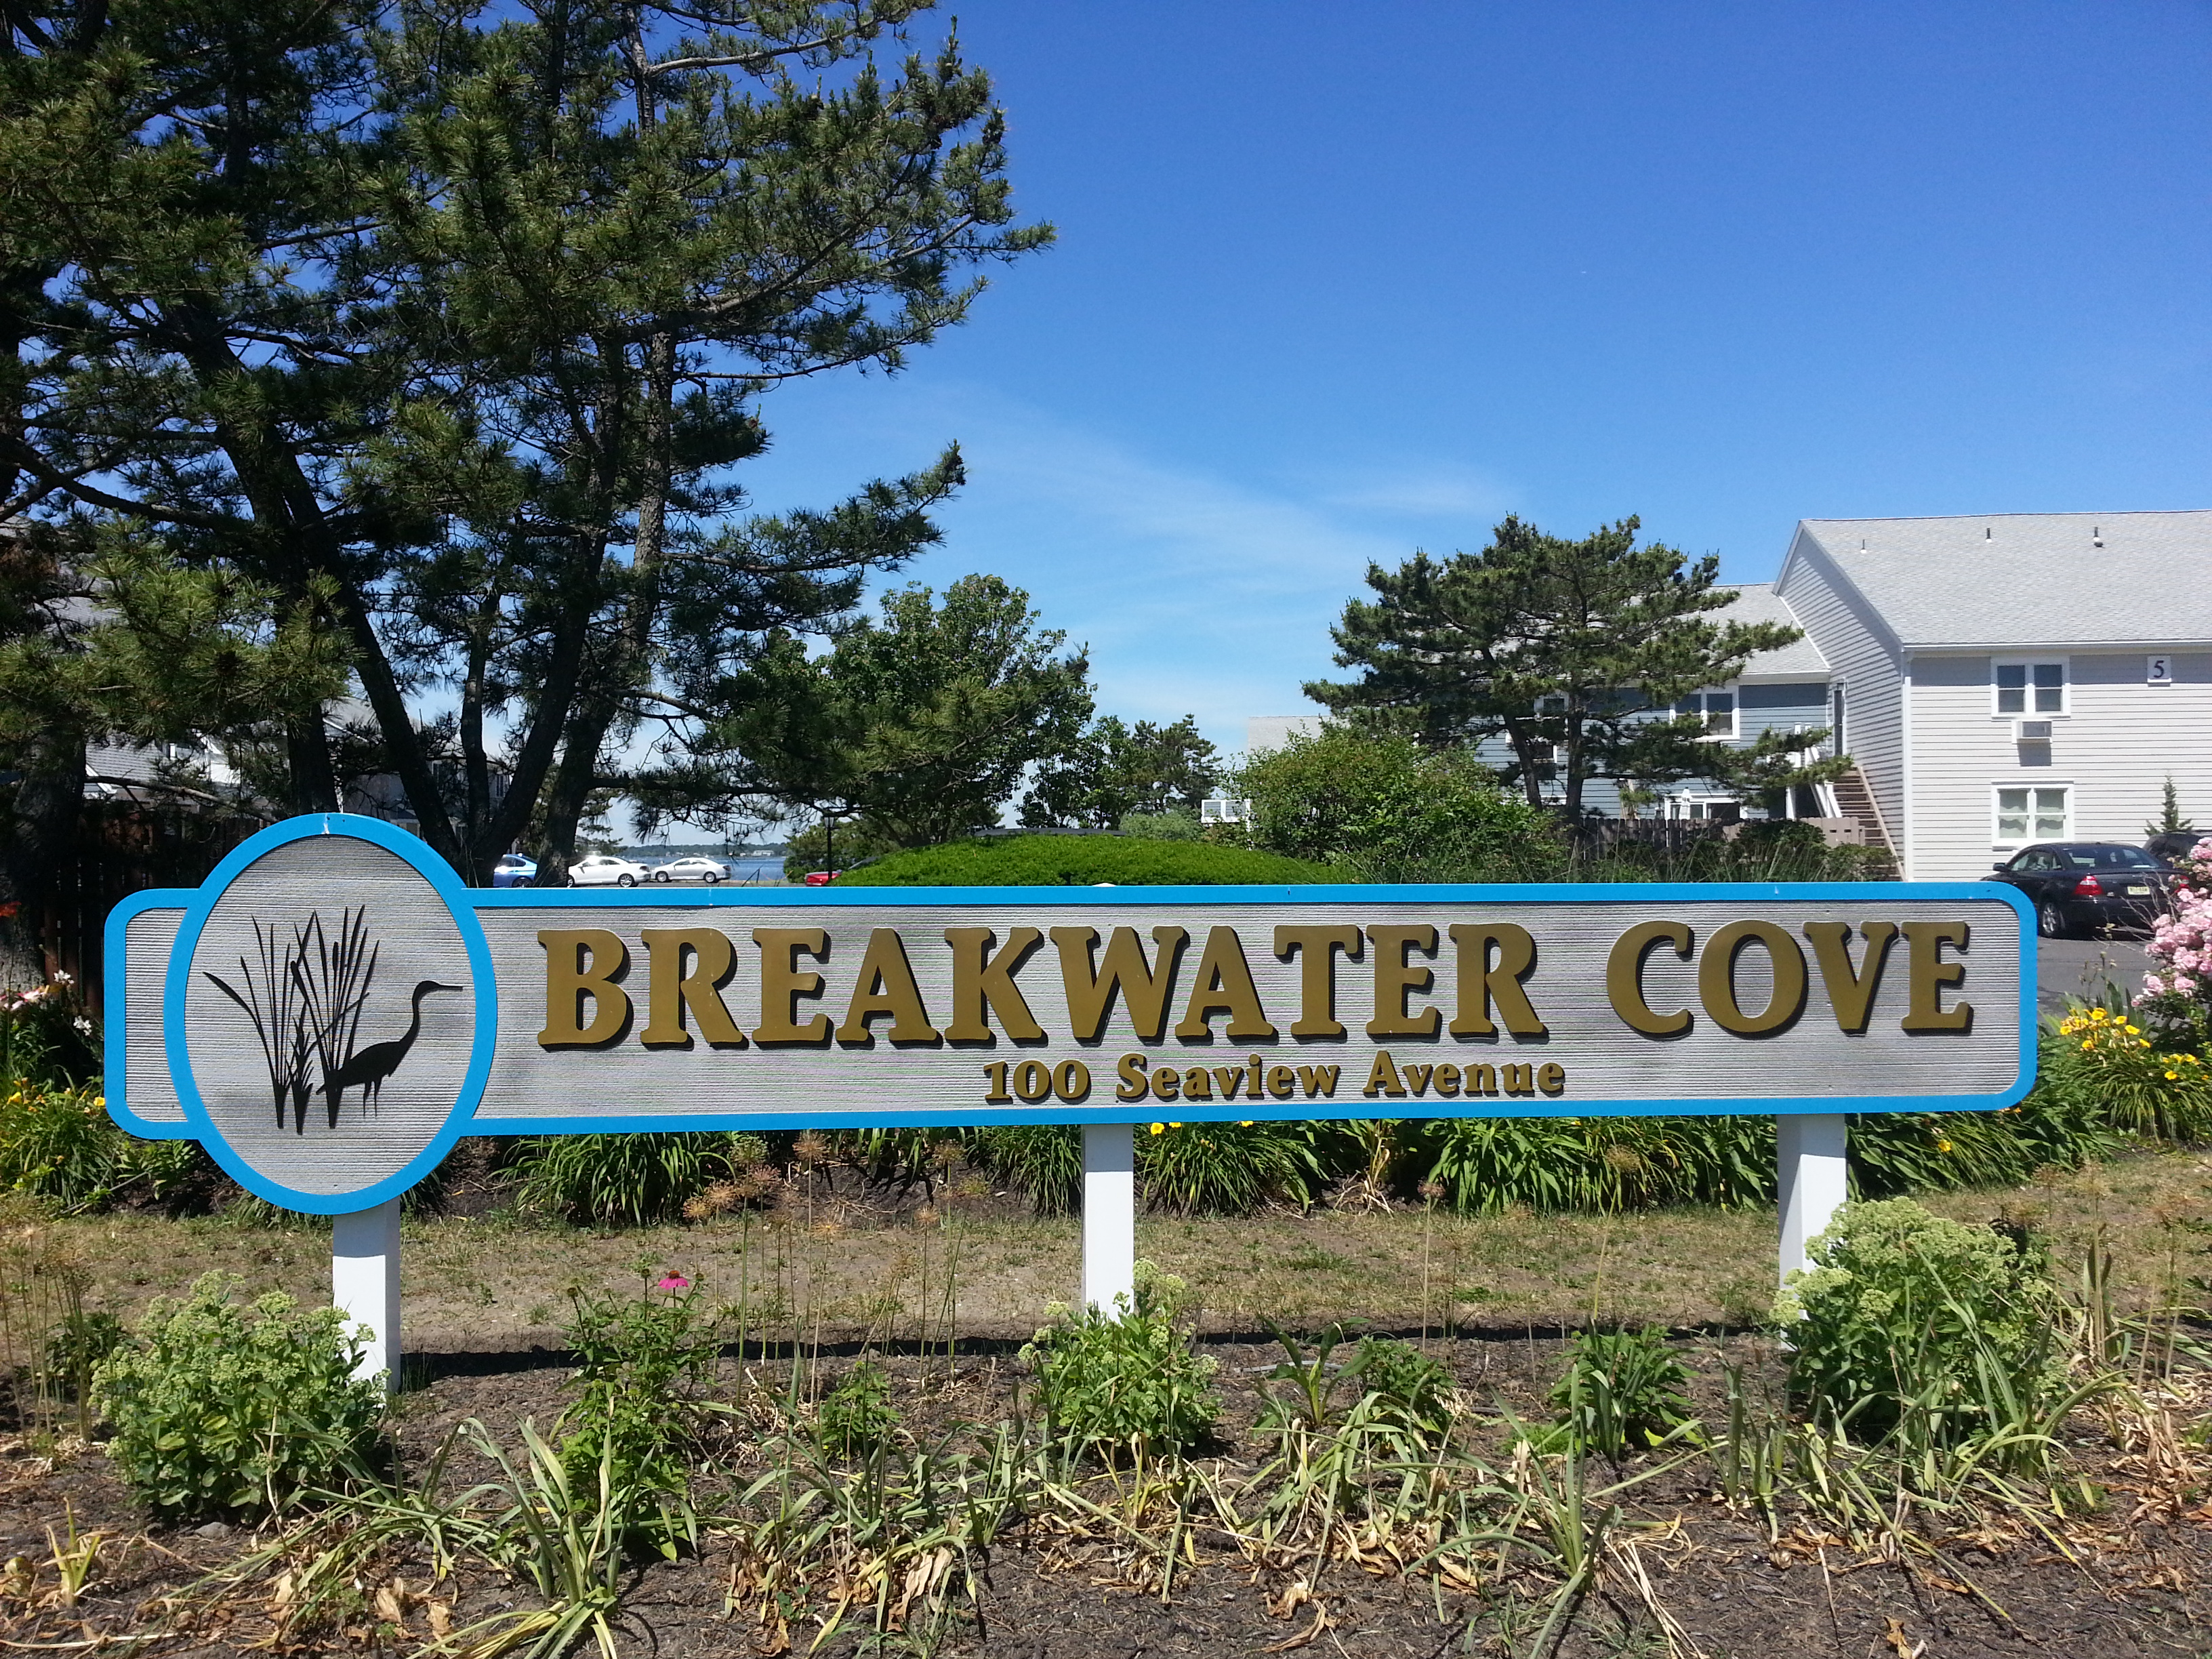 Breakwater Cove, located at 100 Seaview Ave is on the Shrewsbury River and a block from the beach.